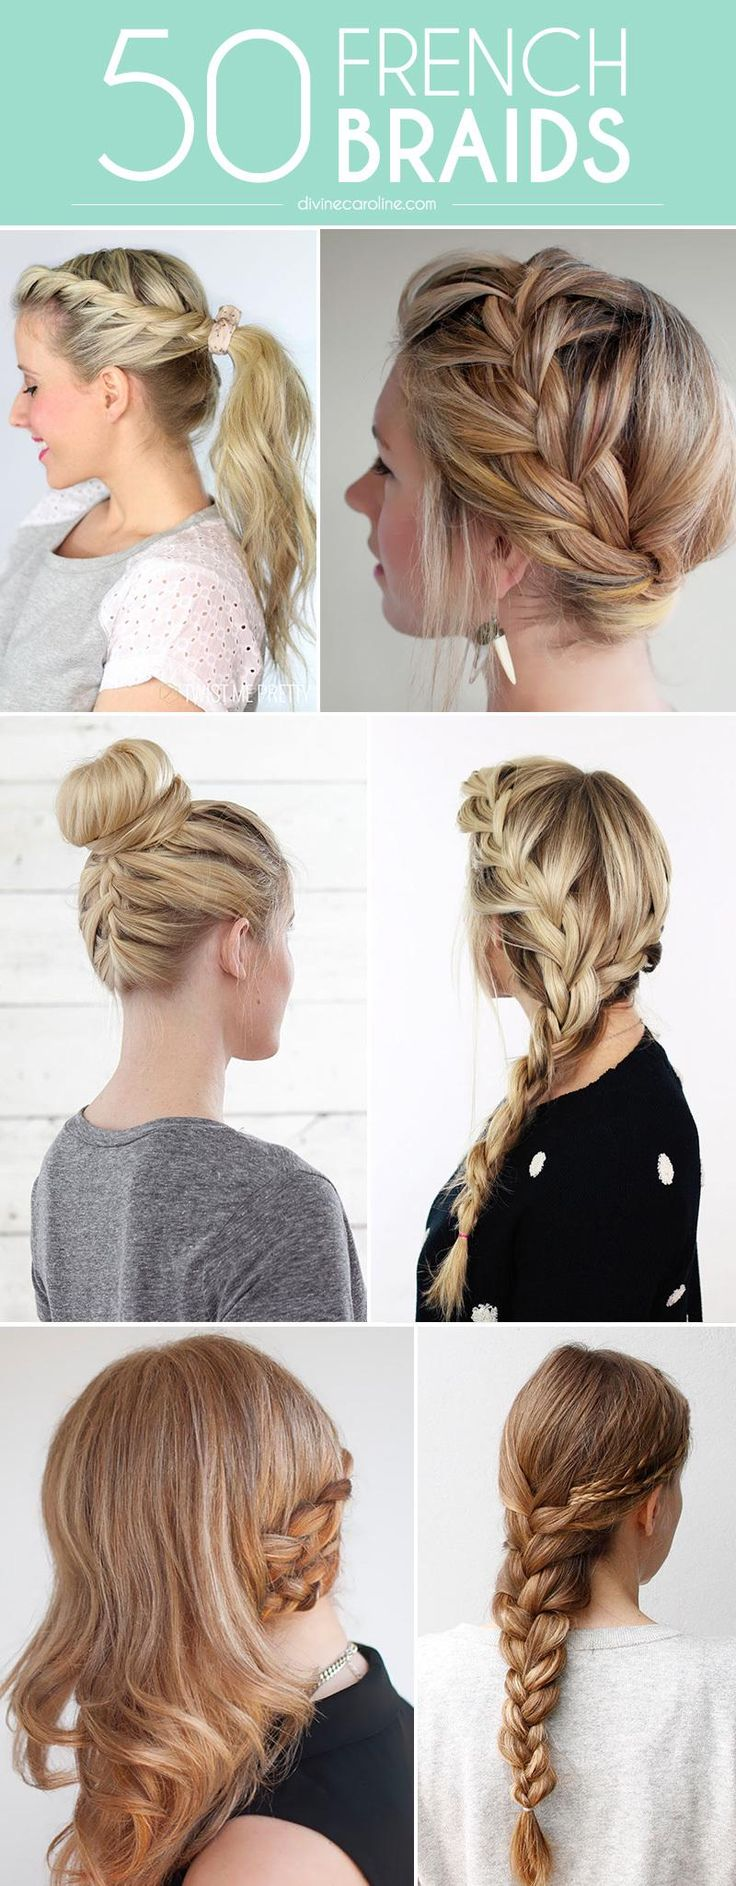 best images about hair ideas for cecily on pinterest side